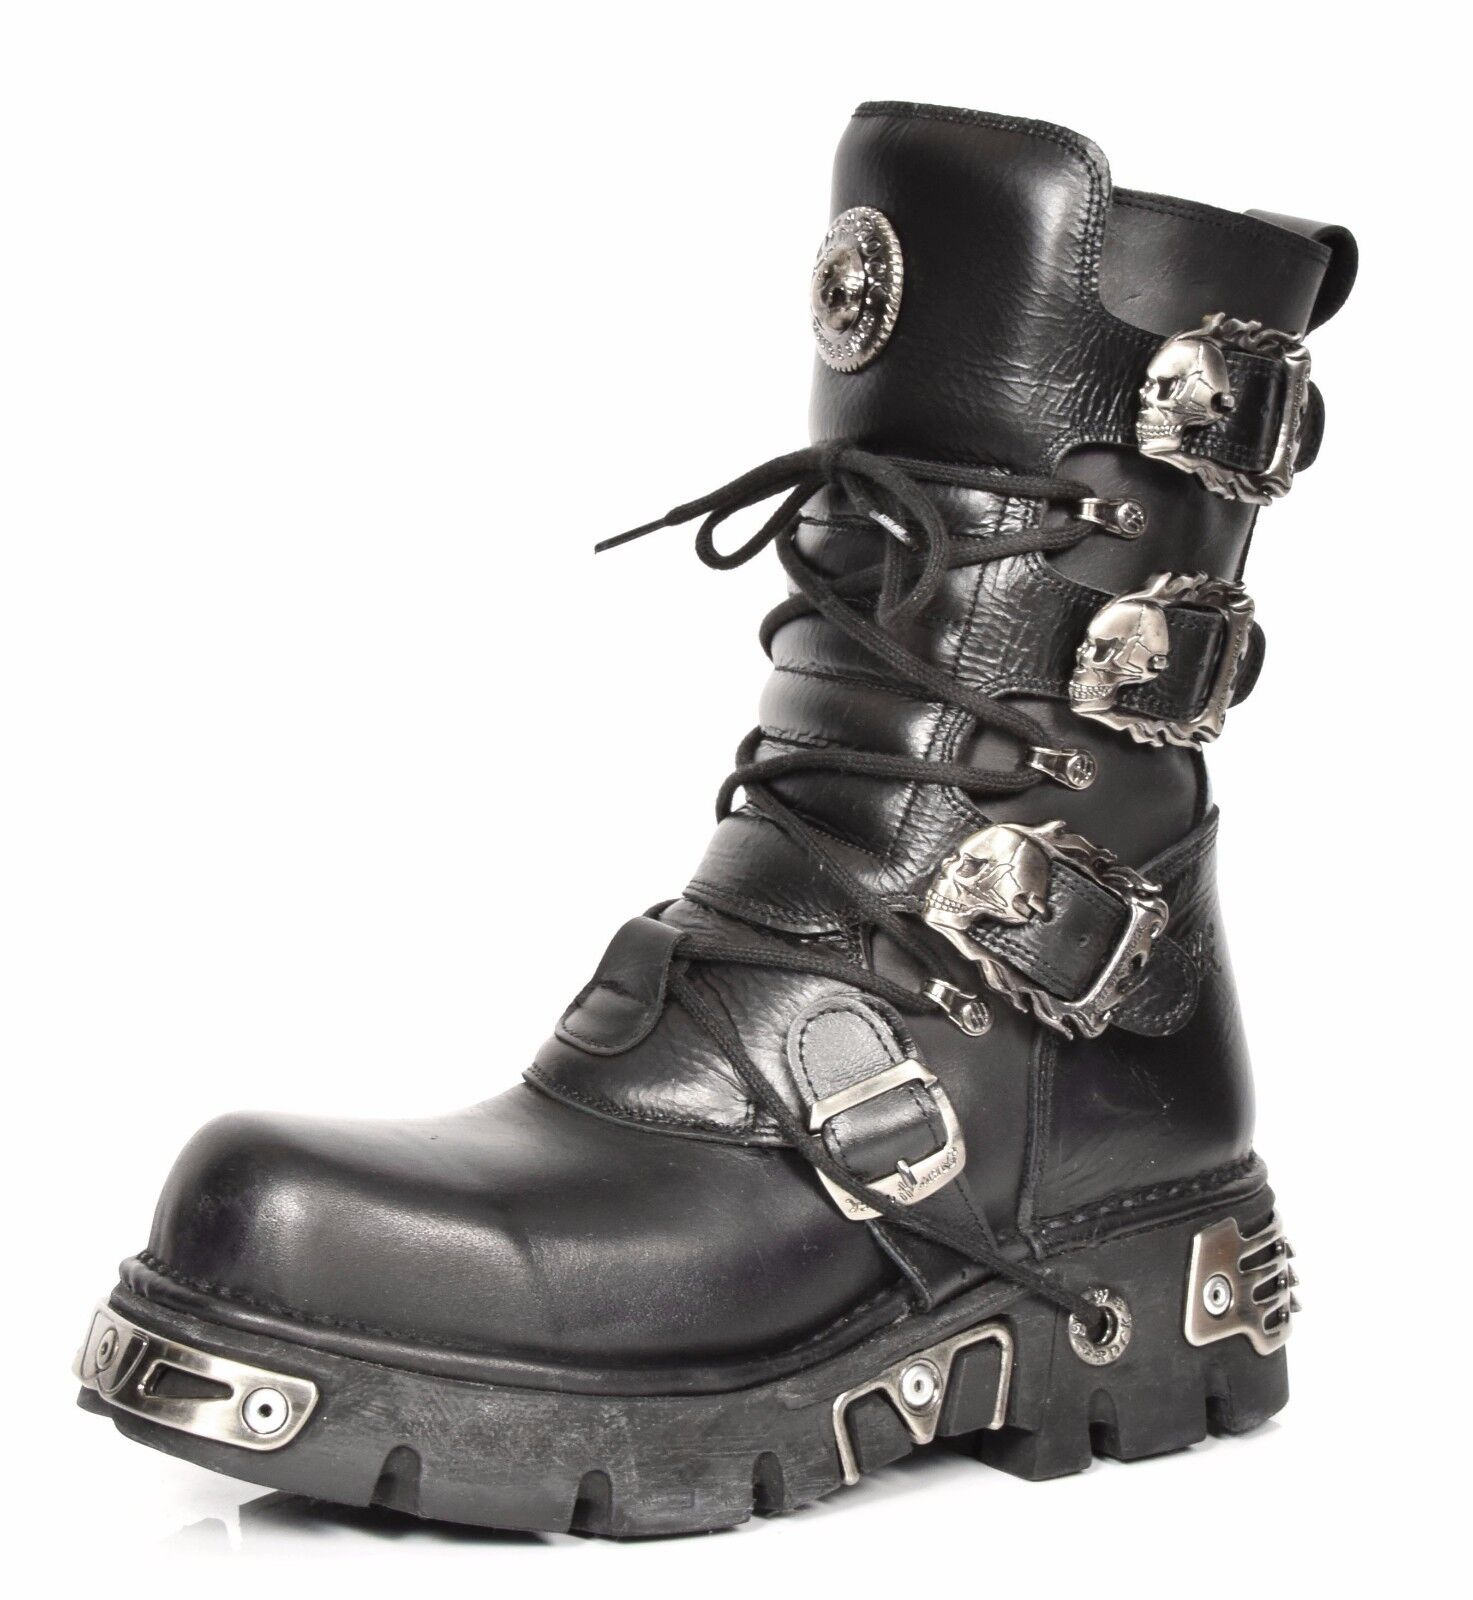 Real Leather Retro Boots Latest New Rock Skull Buckle Design Black Gothic Boots